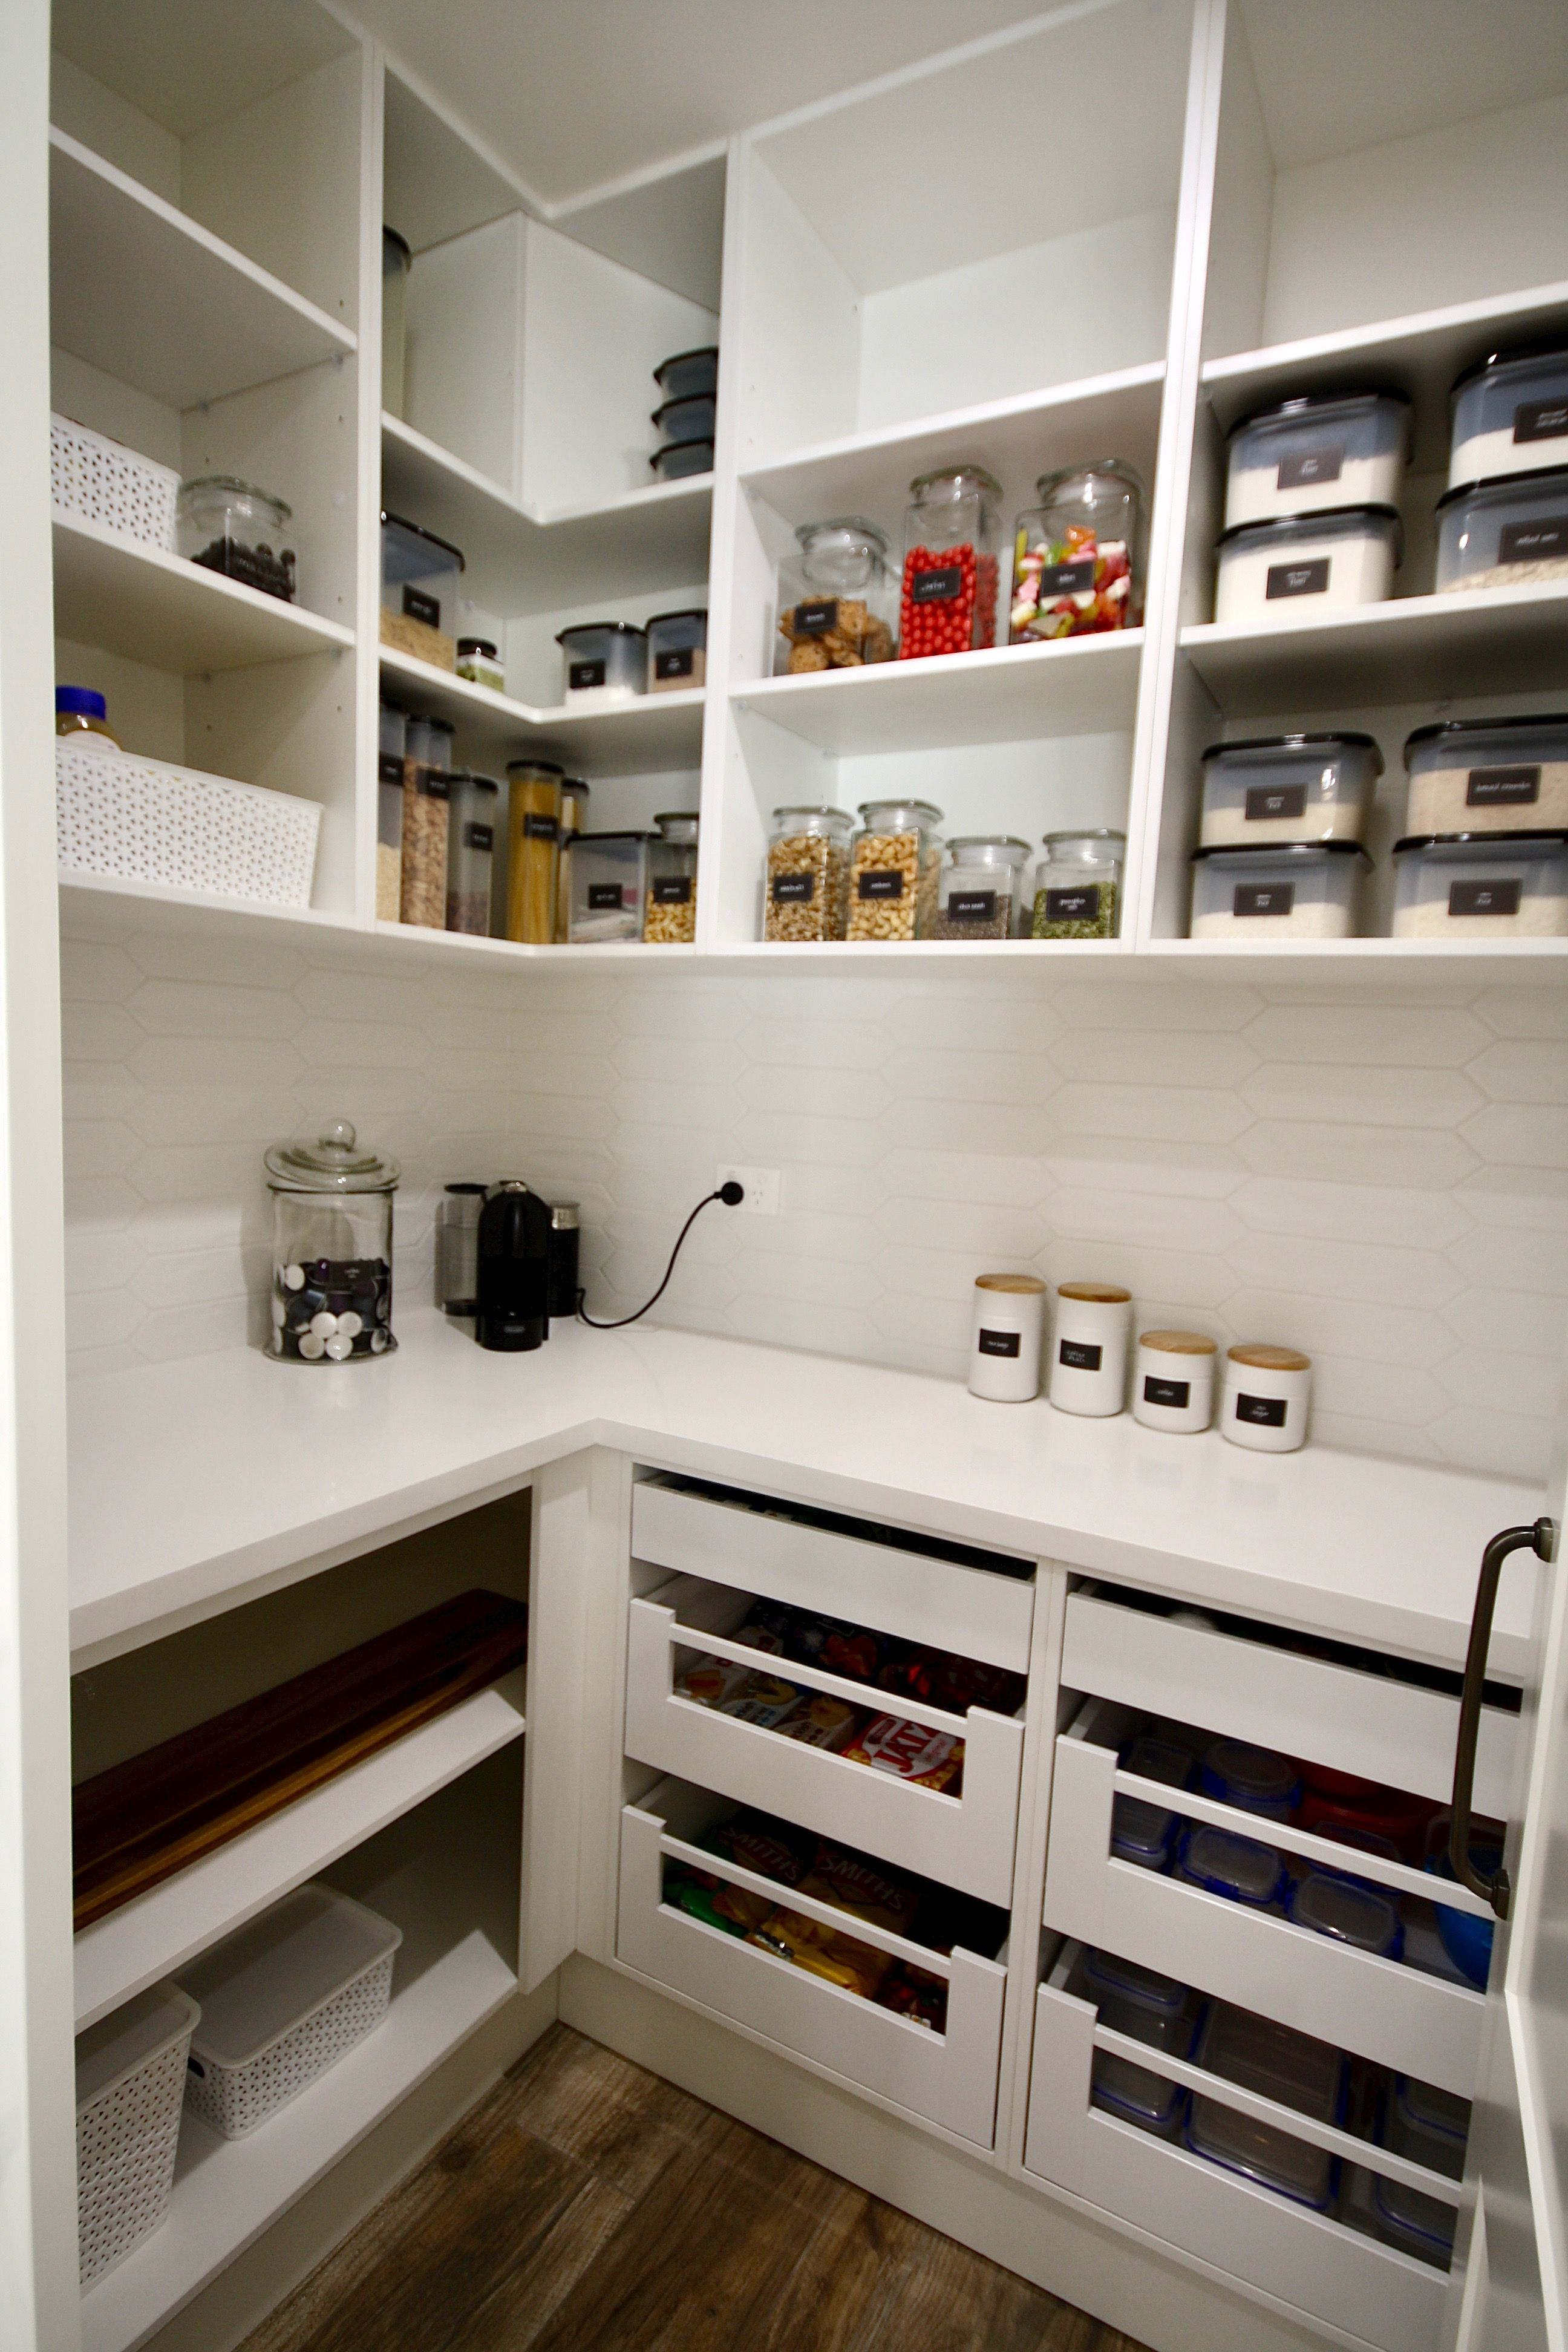 Walk In Pantry Custom Built Walk In Pantry With A Stone Bench Top And Tiled Splash Back With Blum Kitchen Pantry Design Pantry Design Modern Kitchen Design